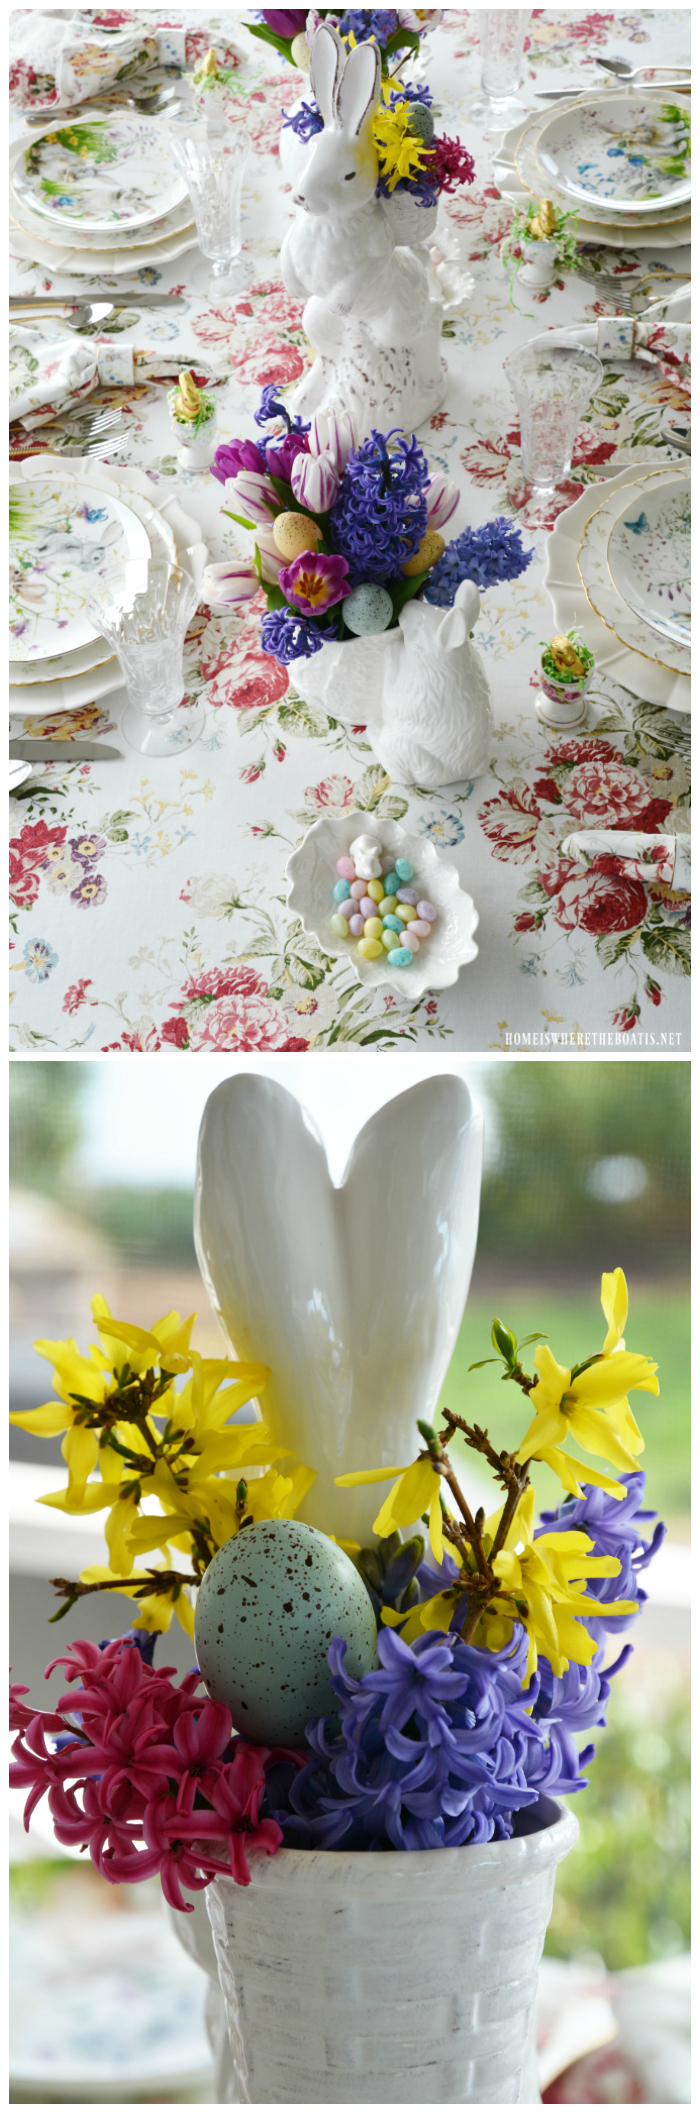 Floral Meadow Easter Table and Blooming Bunnies | ©homeiswheretheboatis.net